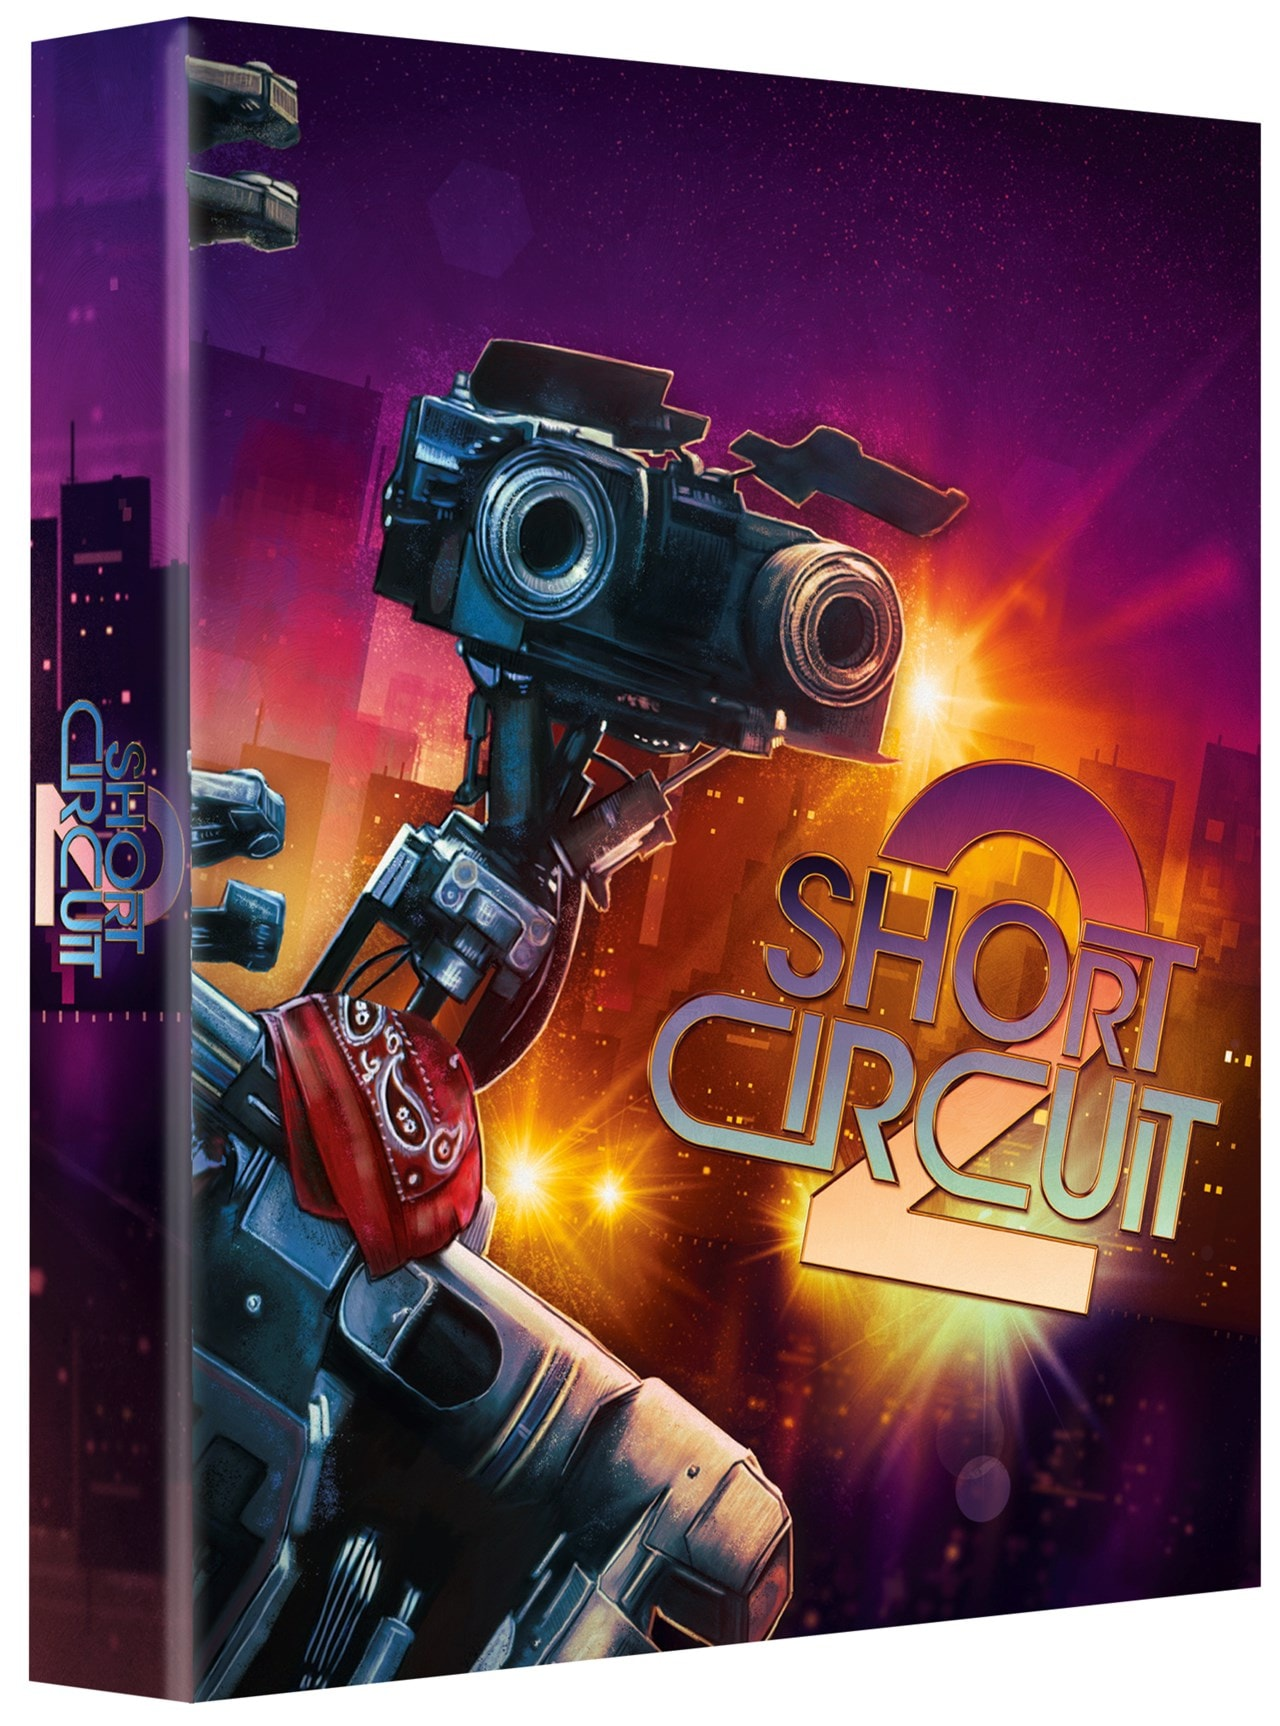 Short Circuit 2 Limited Collector's Edition - 2